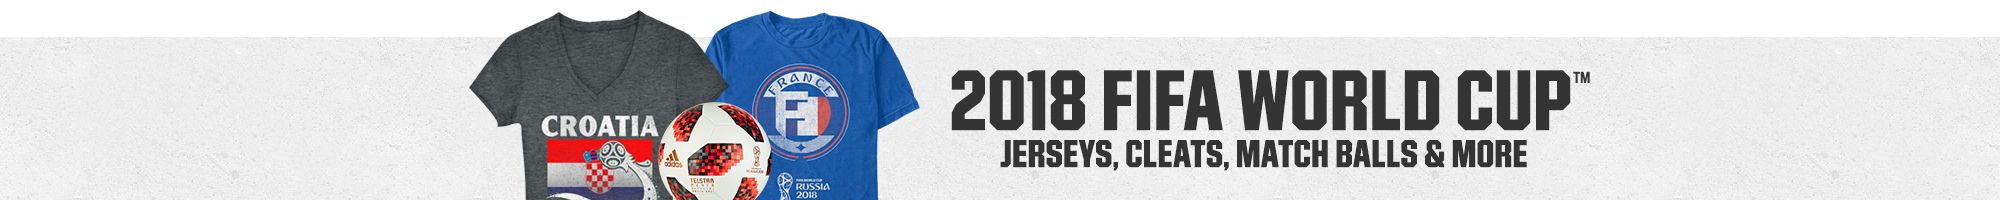 2018 FIFA World Cup | Jerseys, Cleats, Match Balls & More